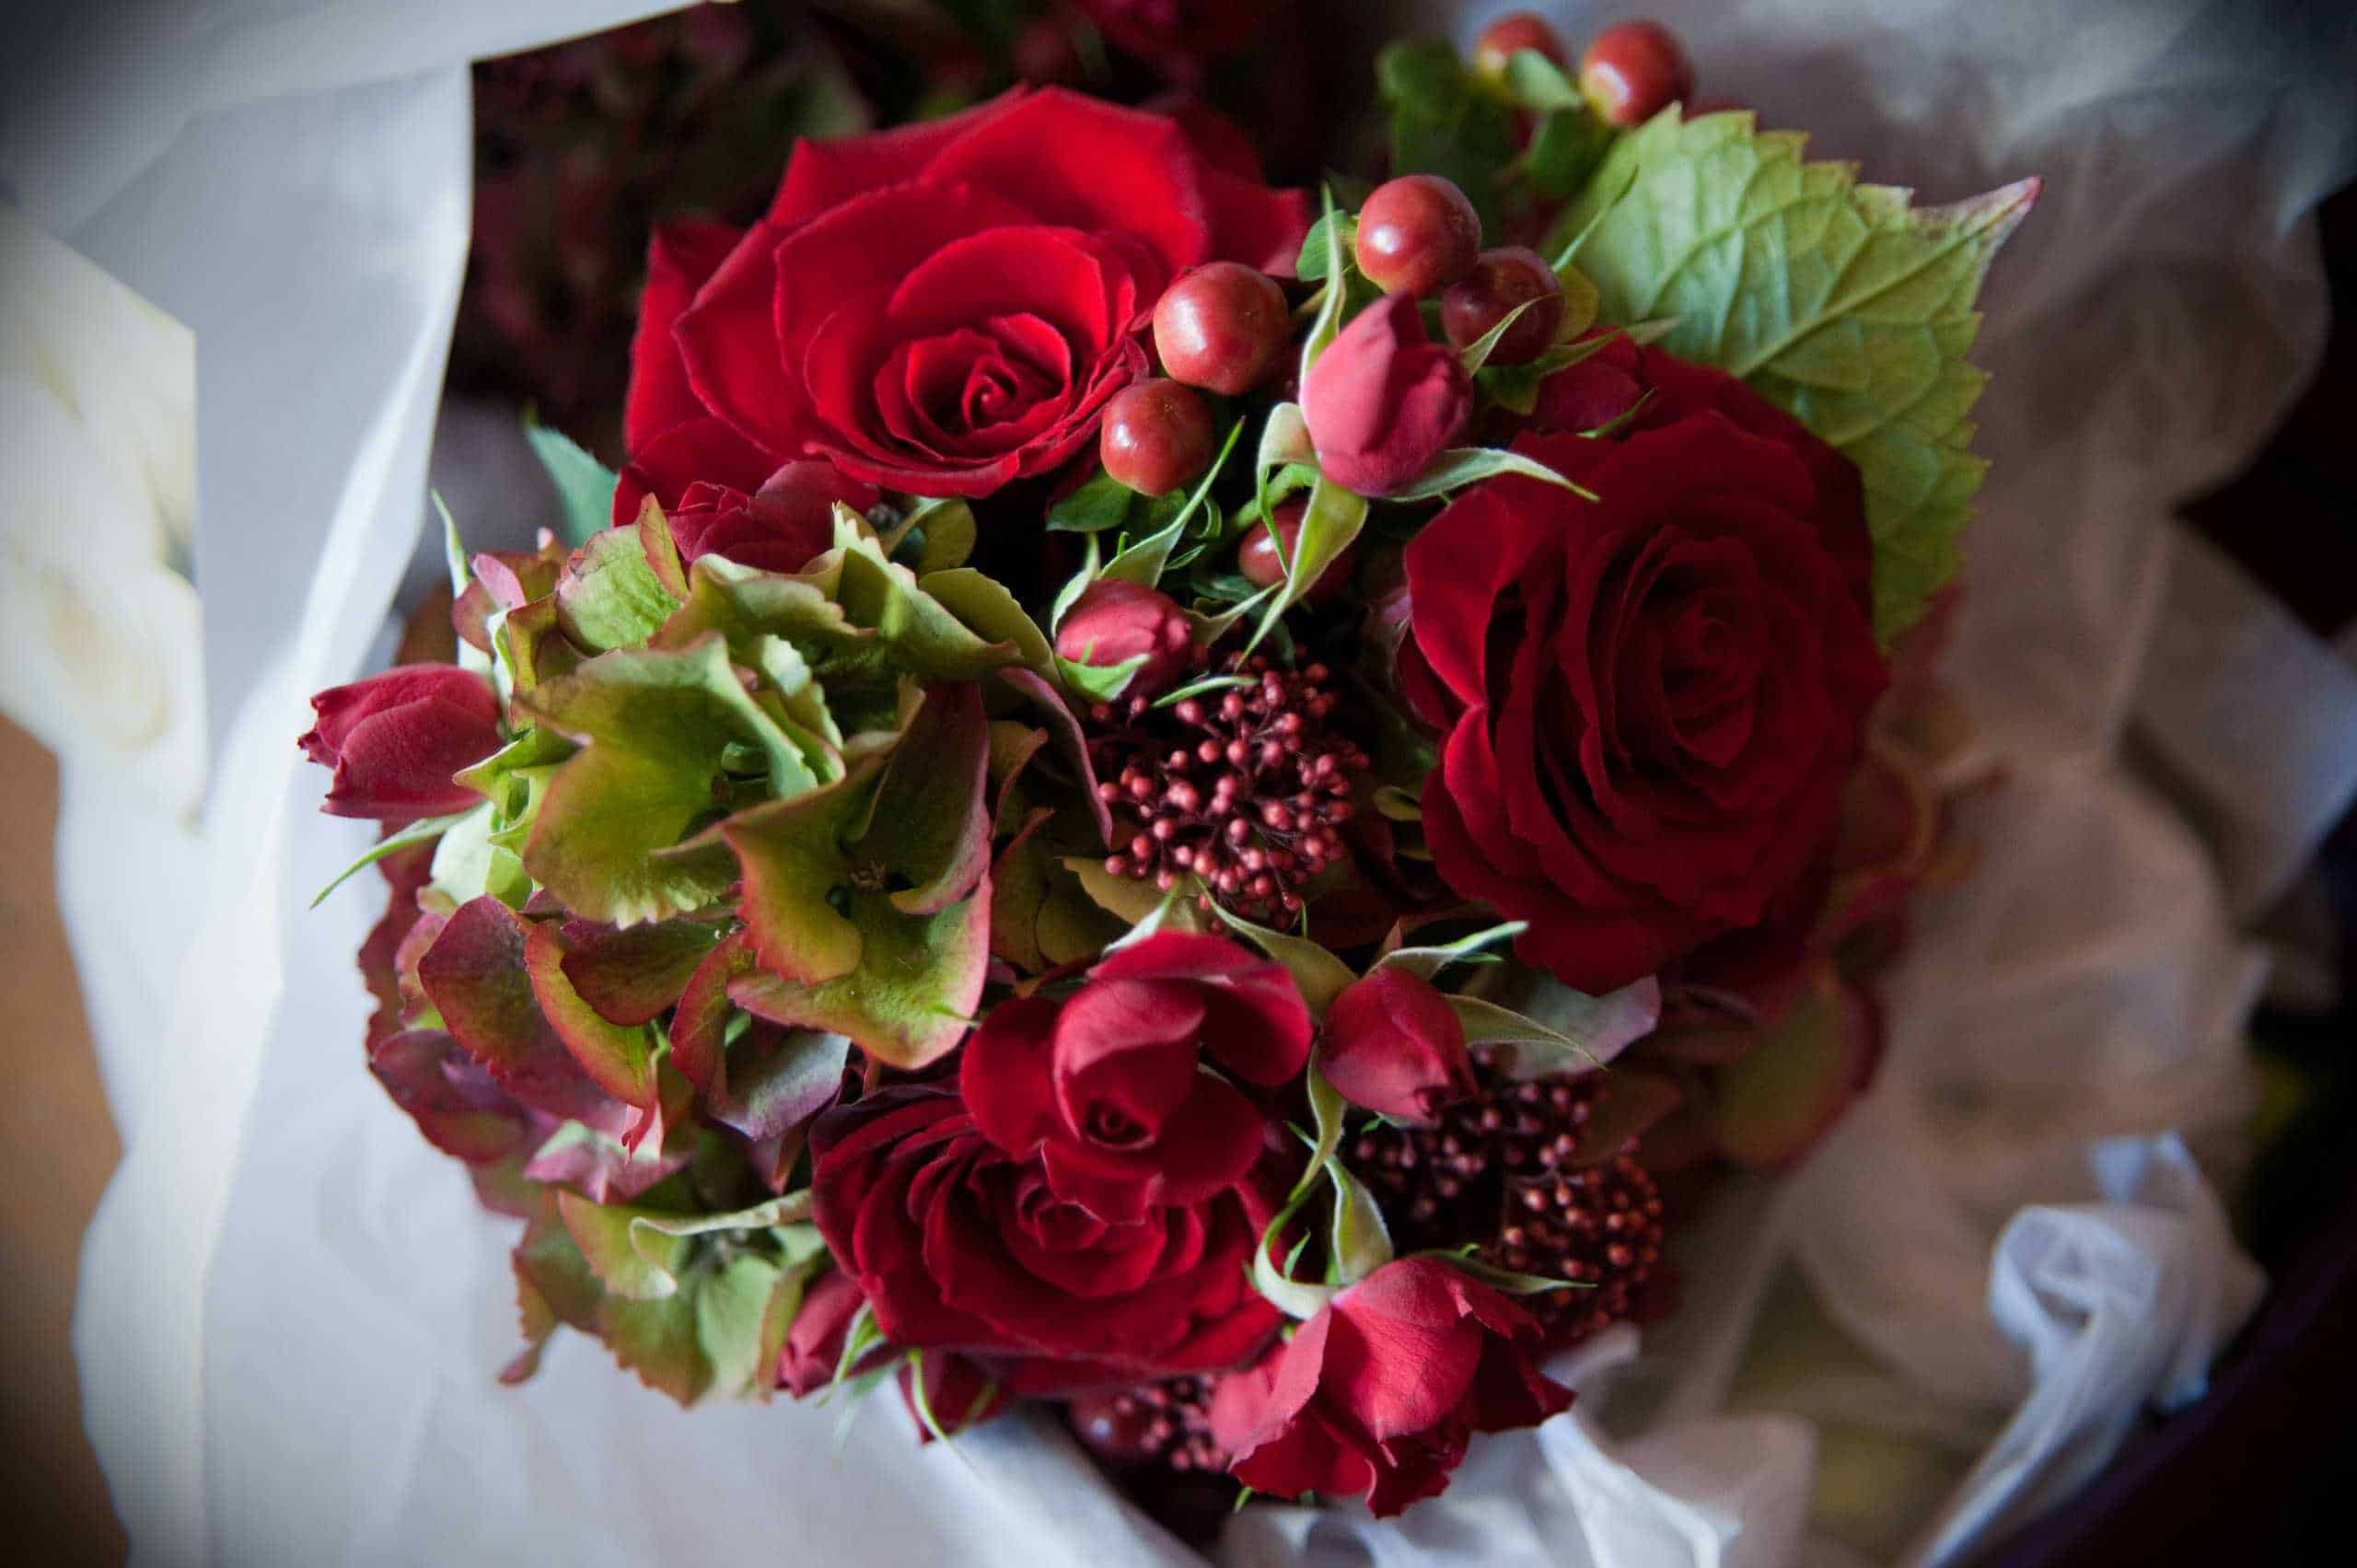 Winter Wedding Colours~Rich reds or winter white?